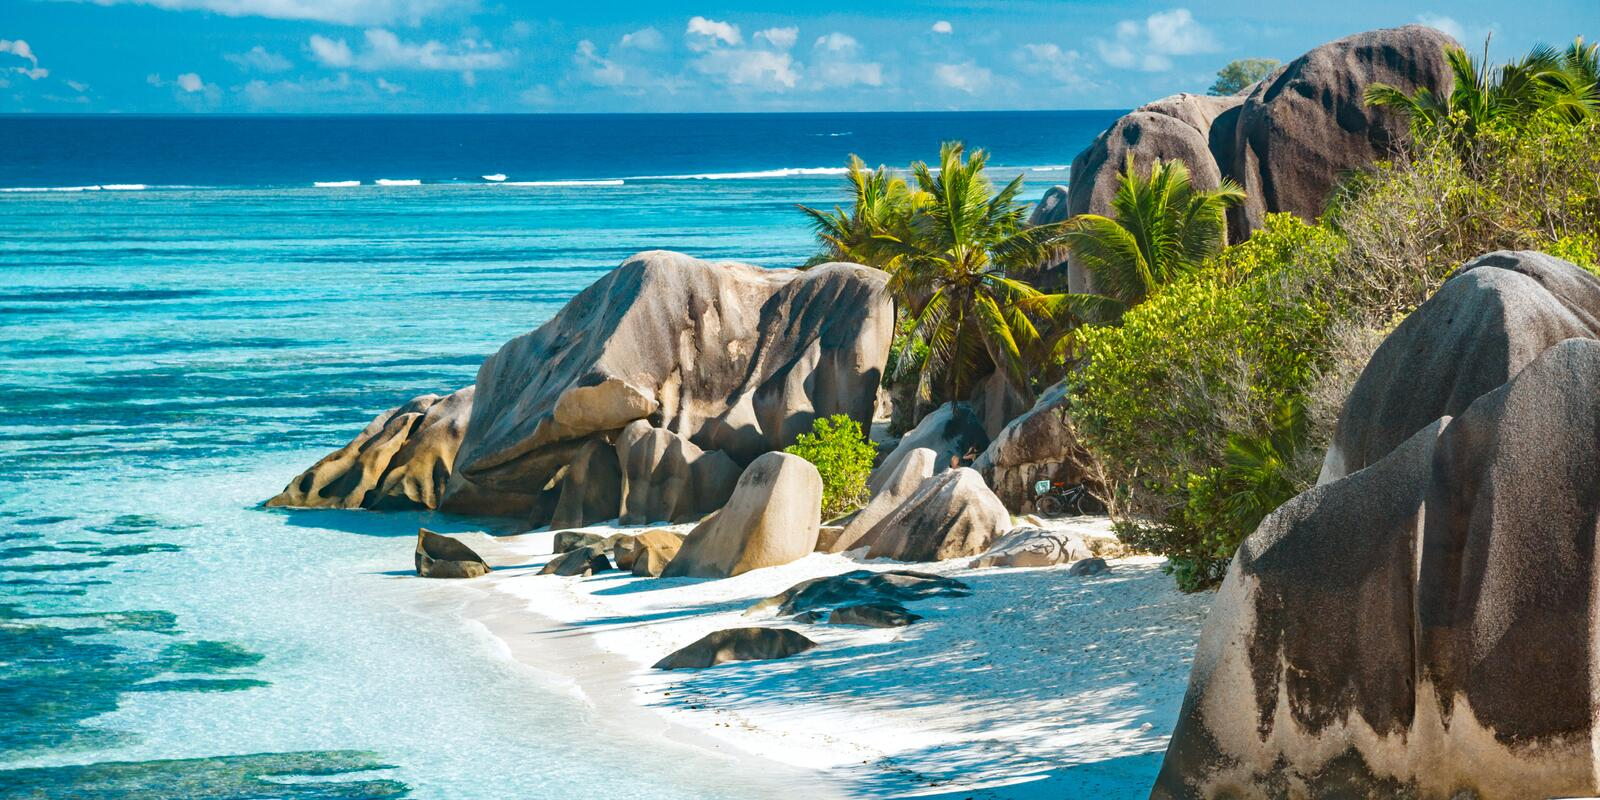 4-day Premium Cruise on a Catamaran with hostess on board at La Digue - All Inclusive